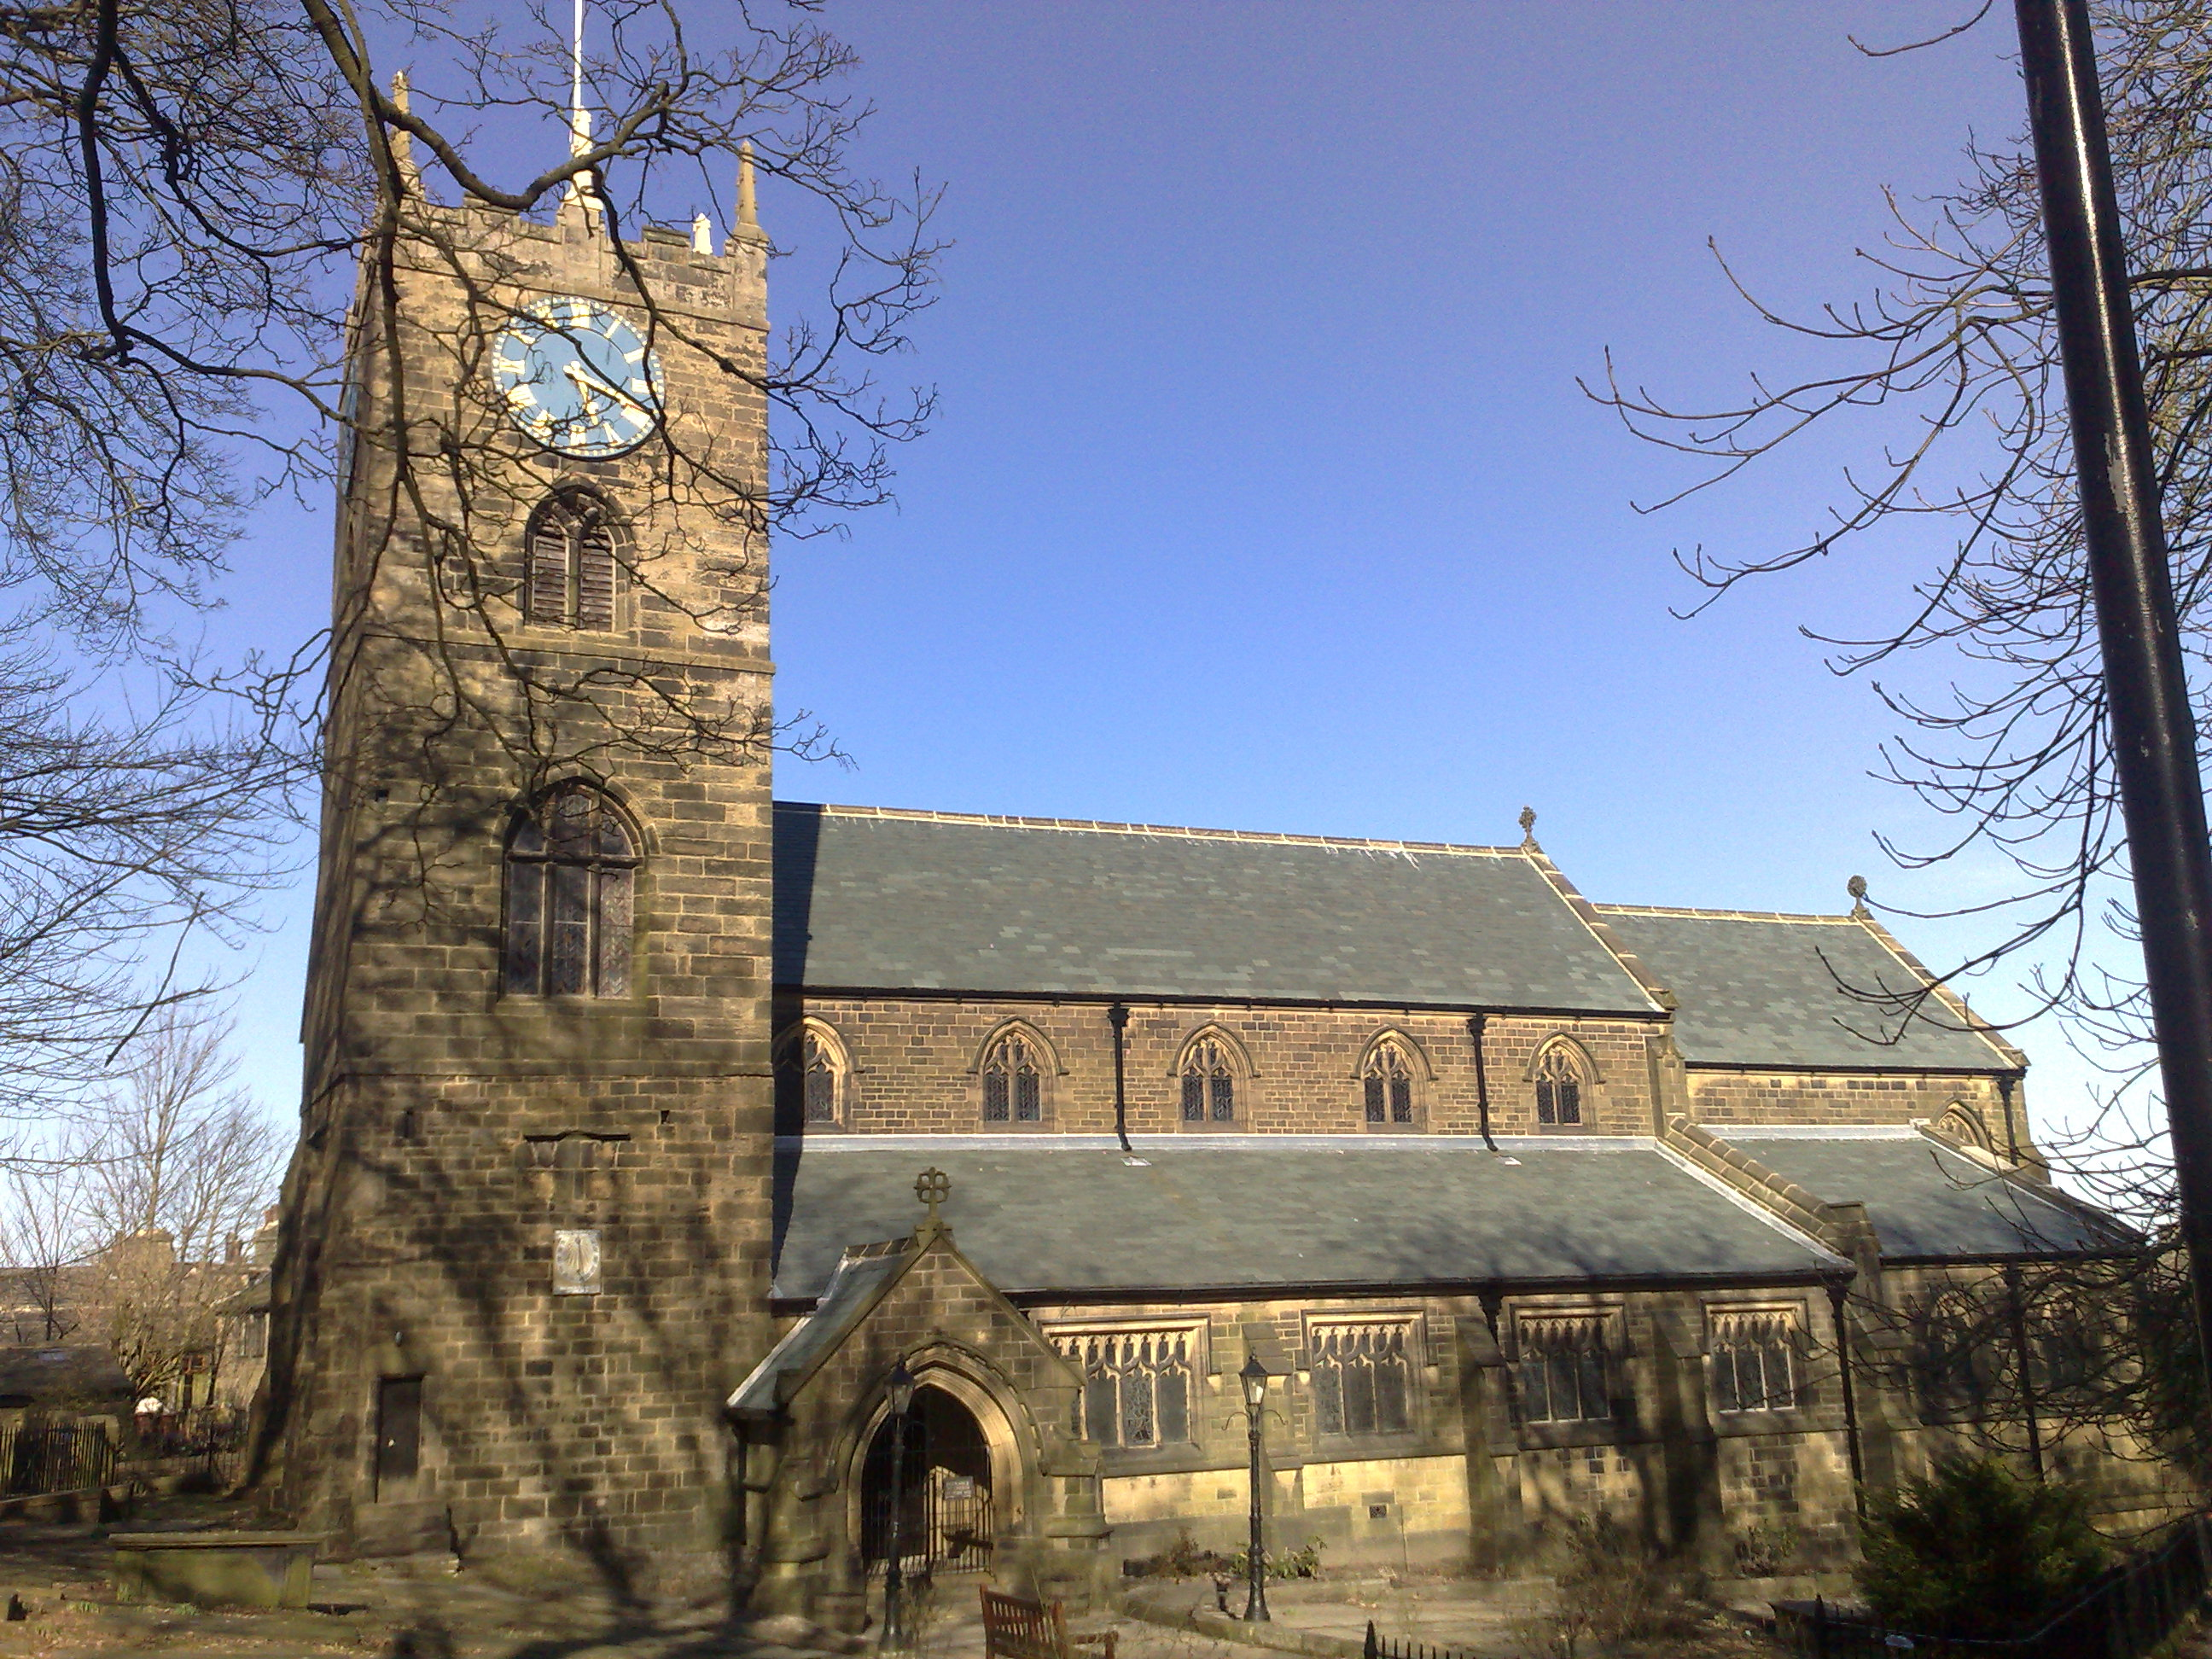 The Church at Haworth